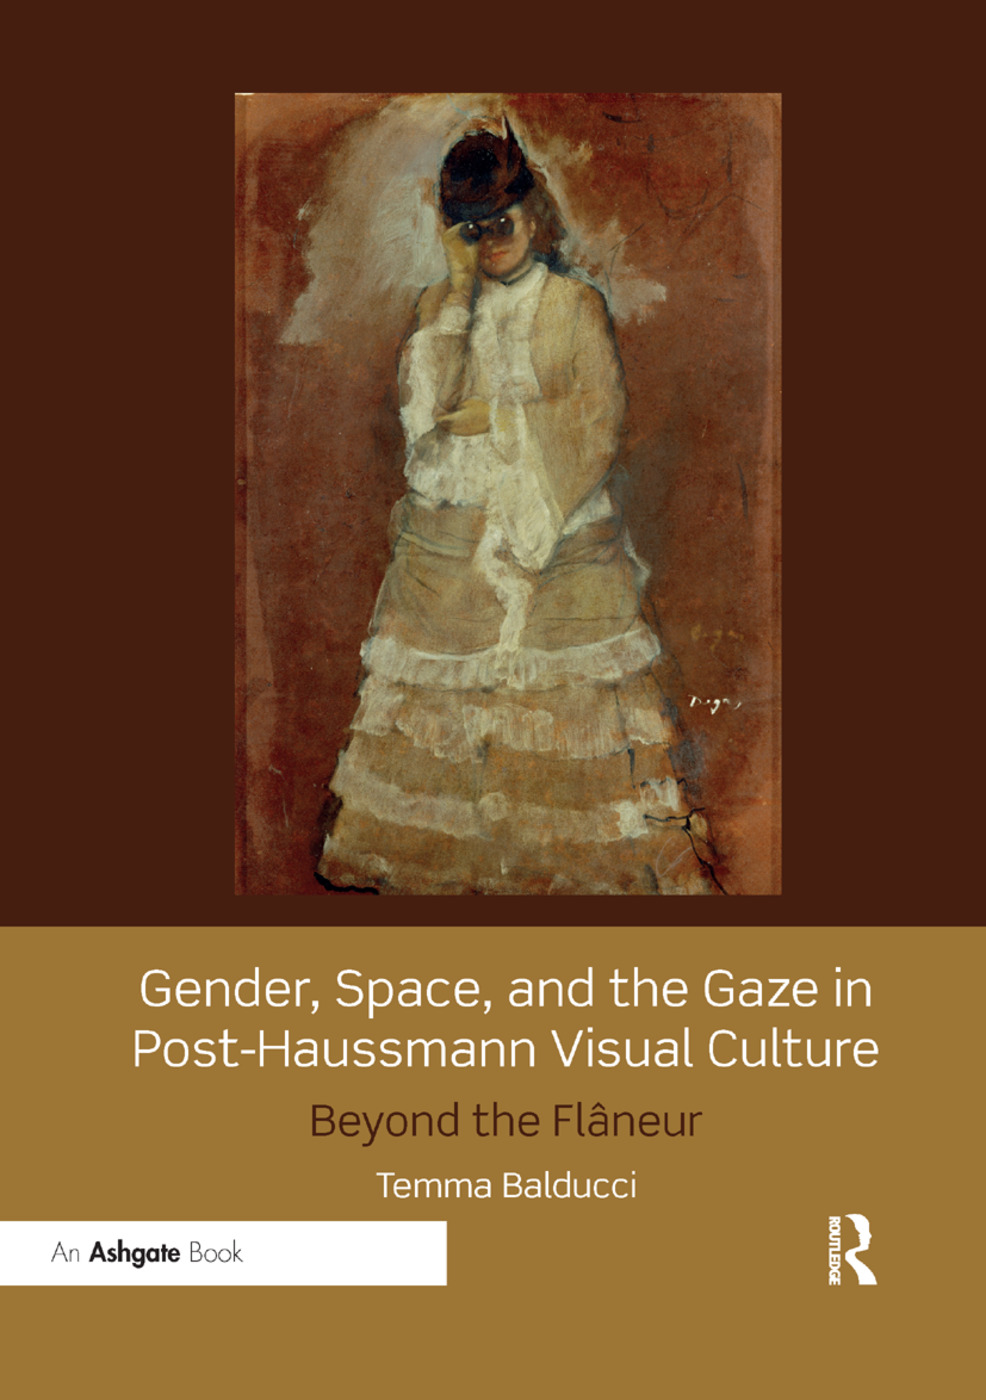 Gender, Space, and the Gaze in Post-Haussmann Visual Culture: Beyond the Flâneur book cover